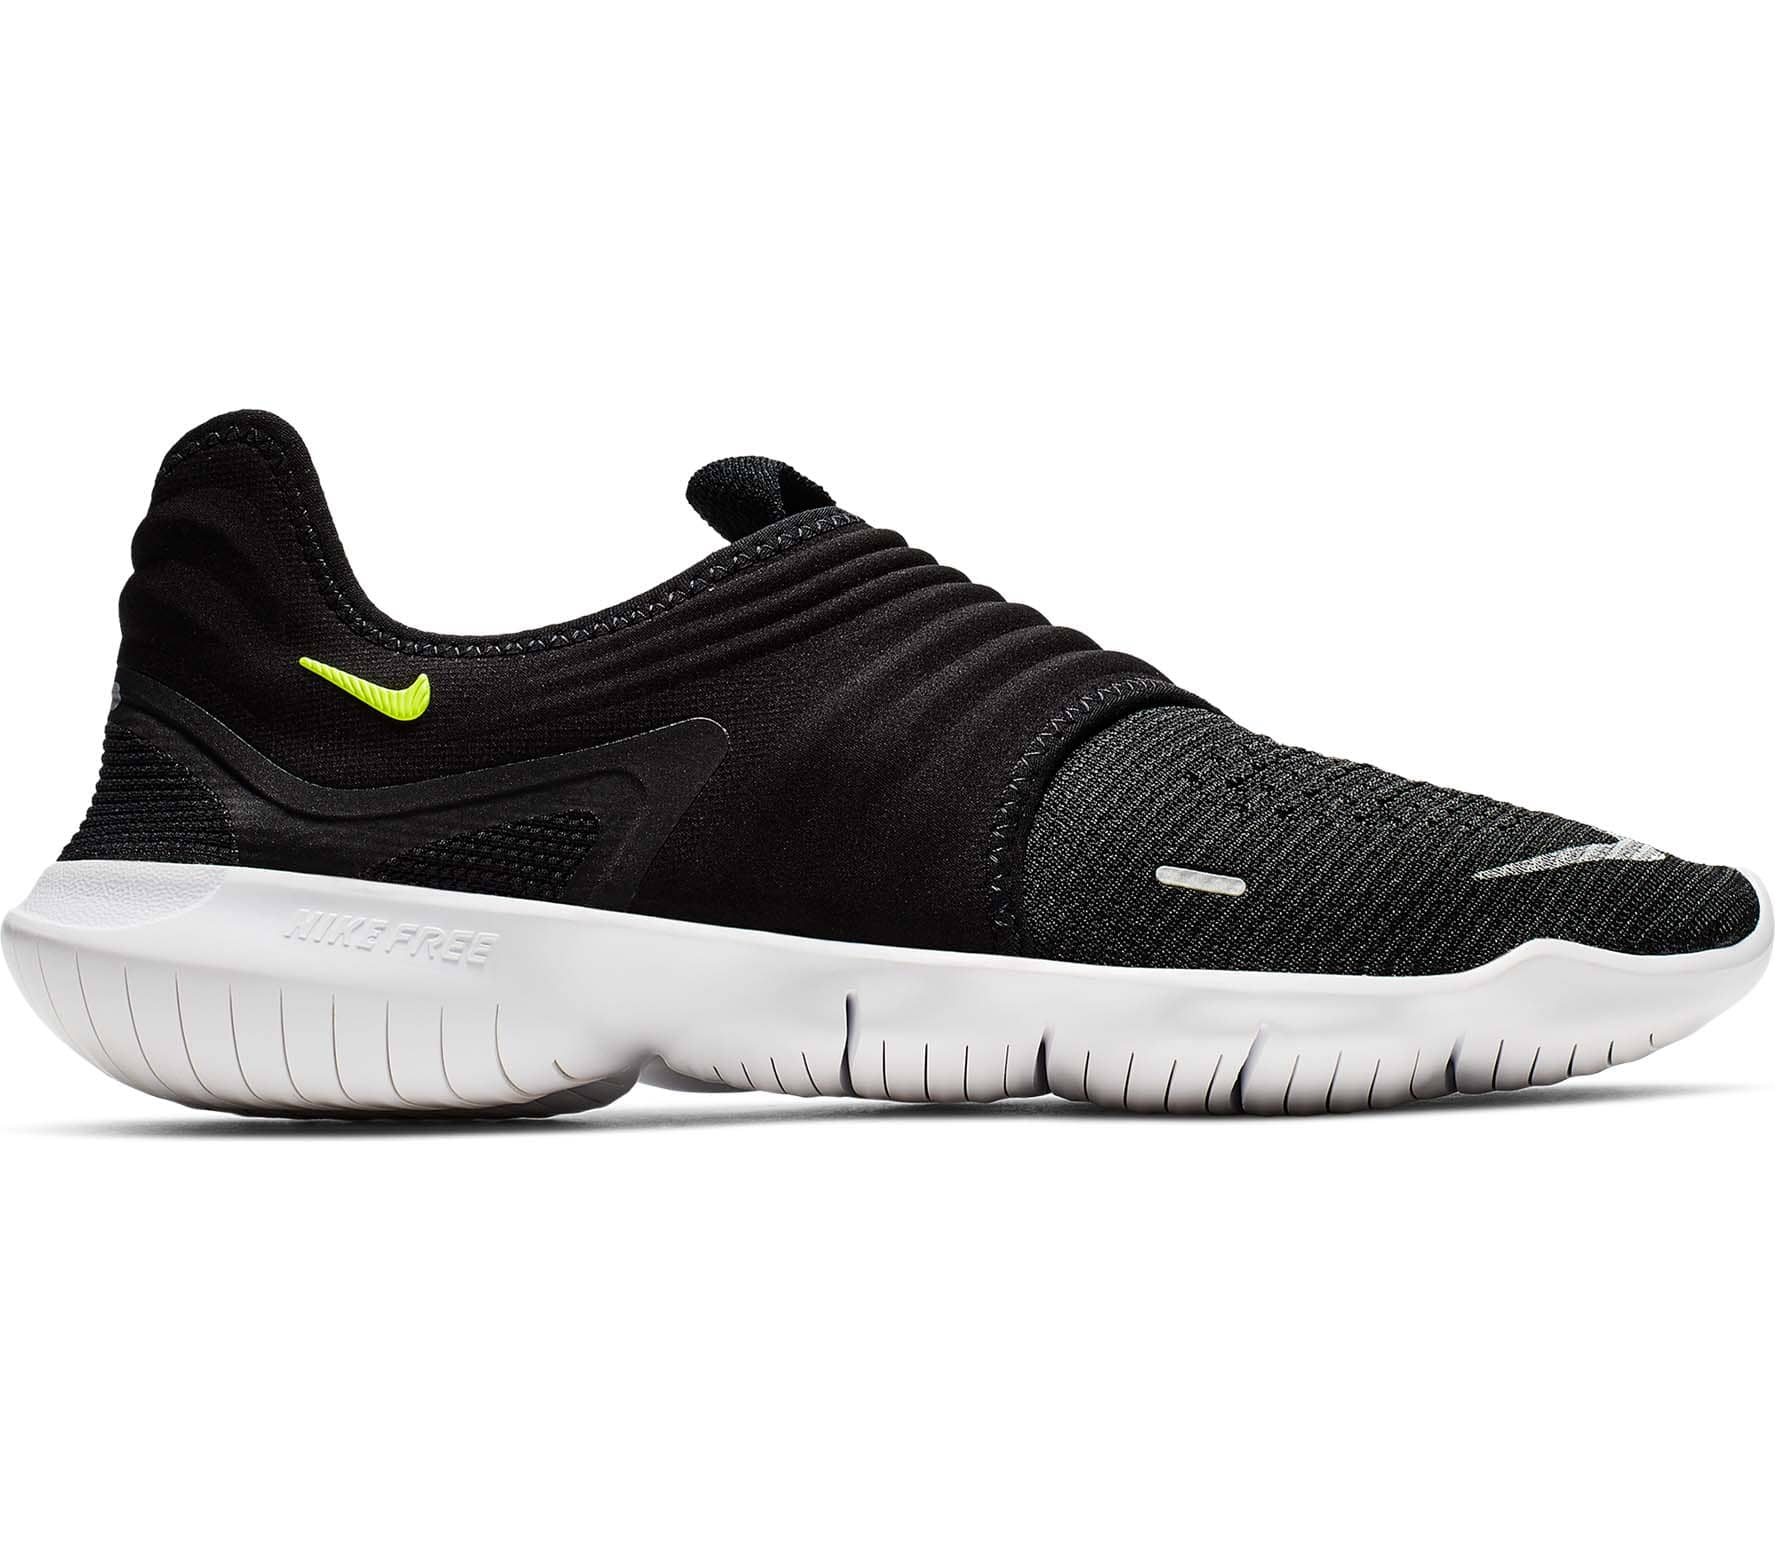 various colors new cheap the sale of shoes Free RN Flyknit 3.0 Herren Laufschuh